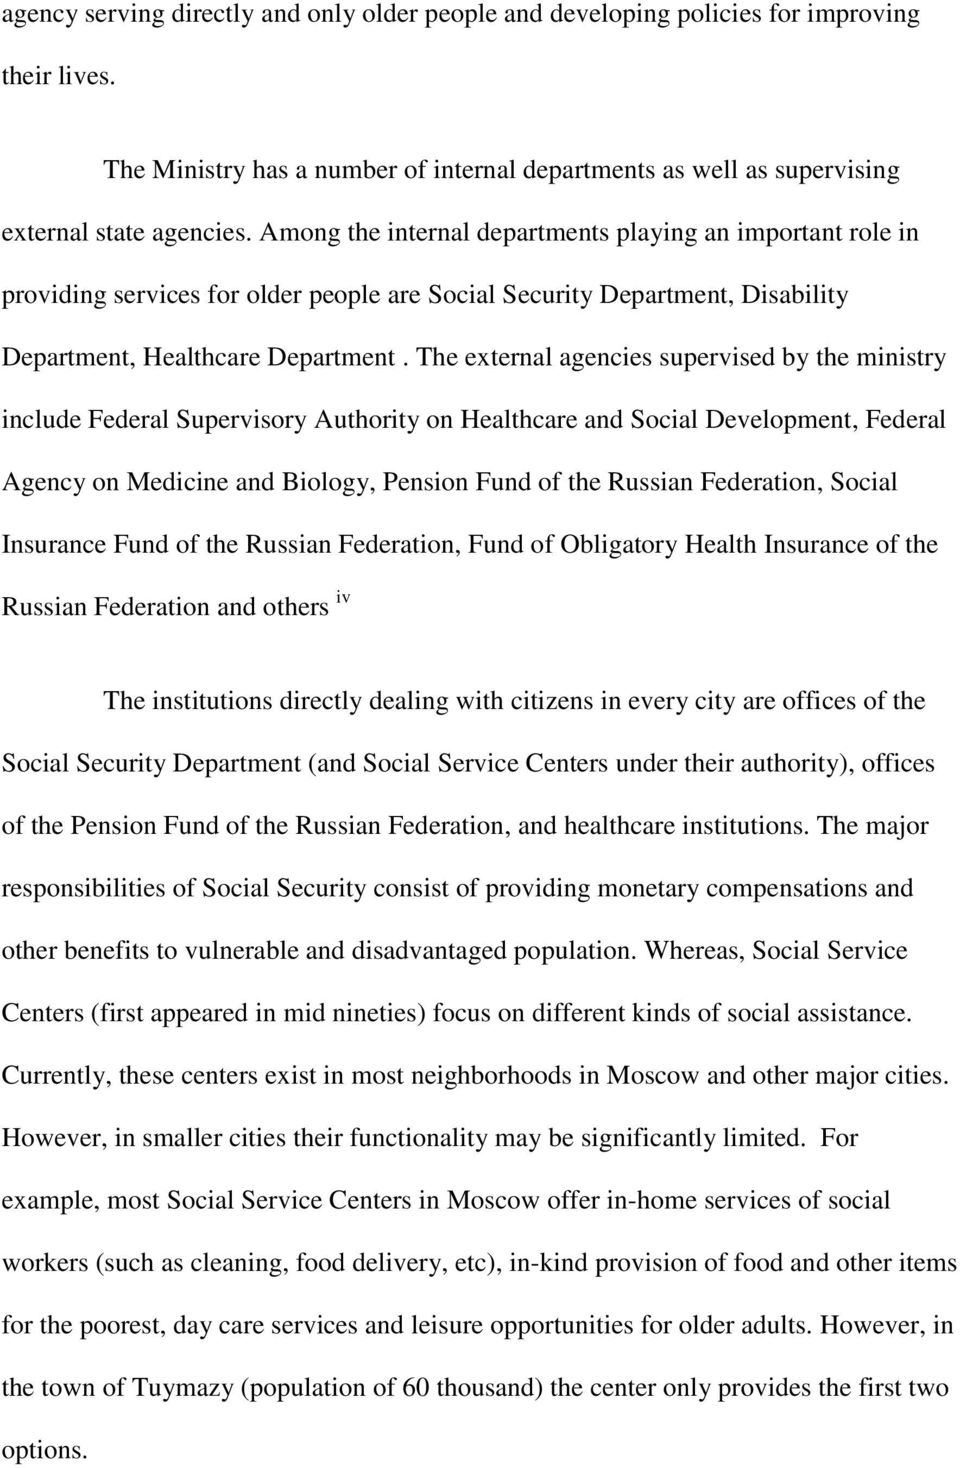 The external agencies supervised by the ministry include Federal Supervisory Authority on Healthcare and Social Development, Federal Agency on Medicine and Biology, Pension Fund of the Russian